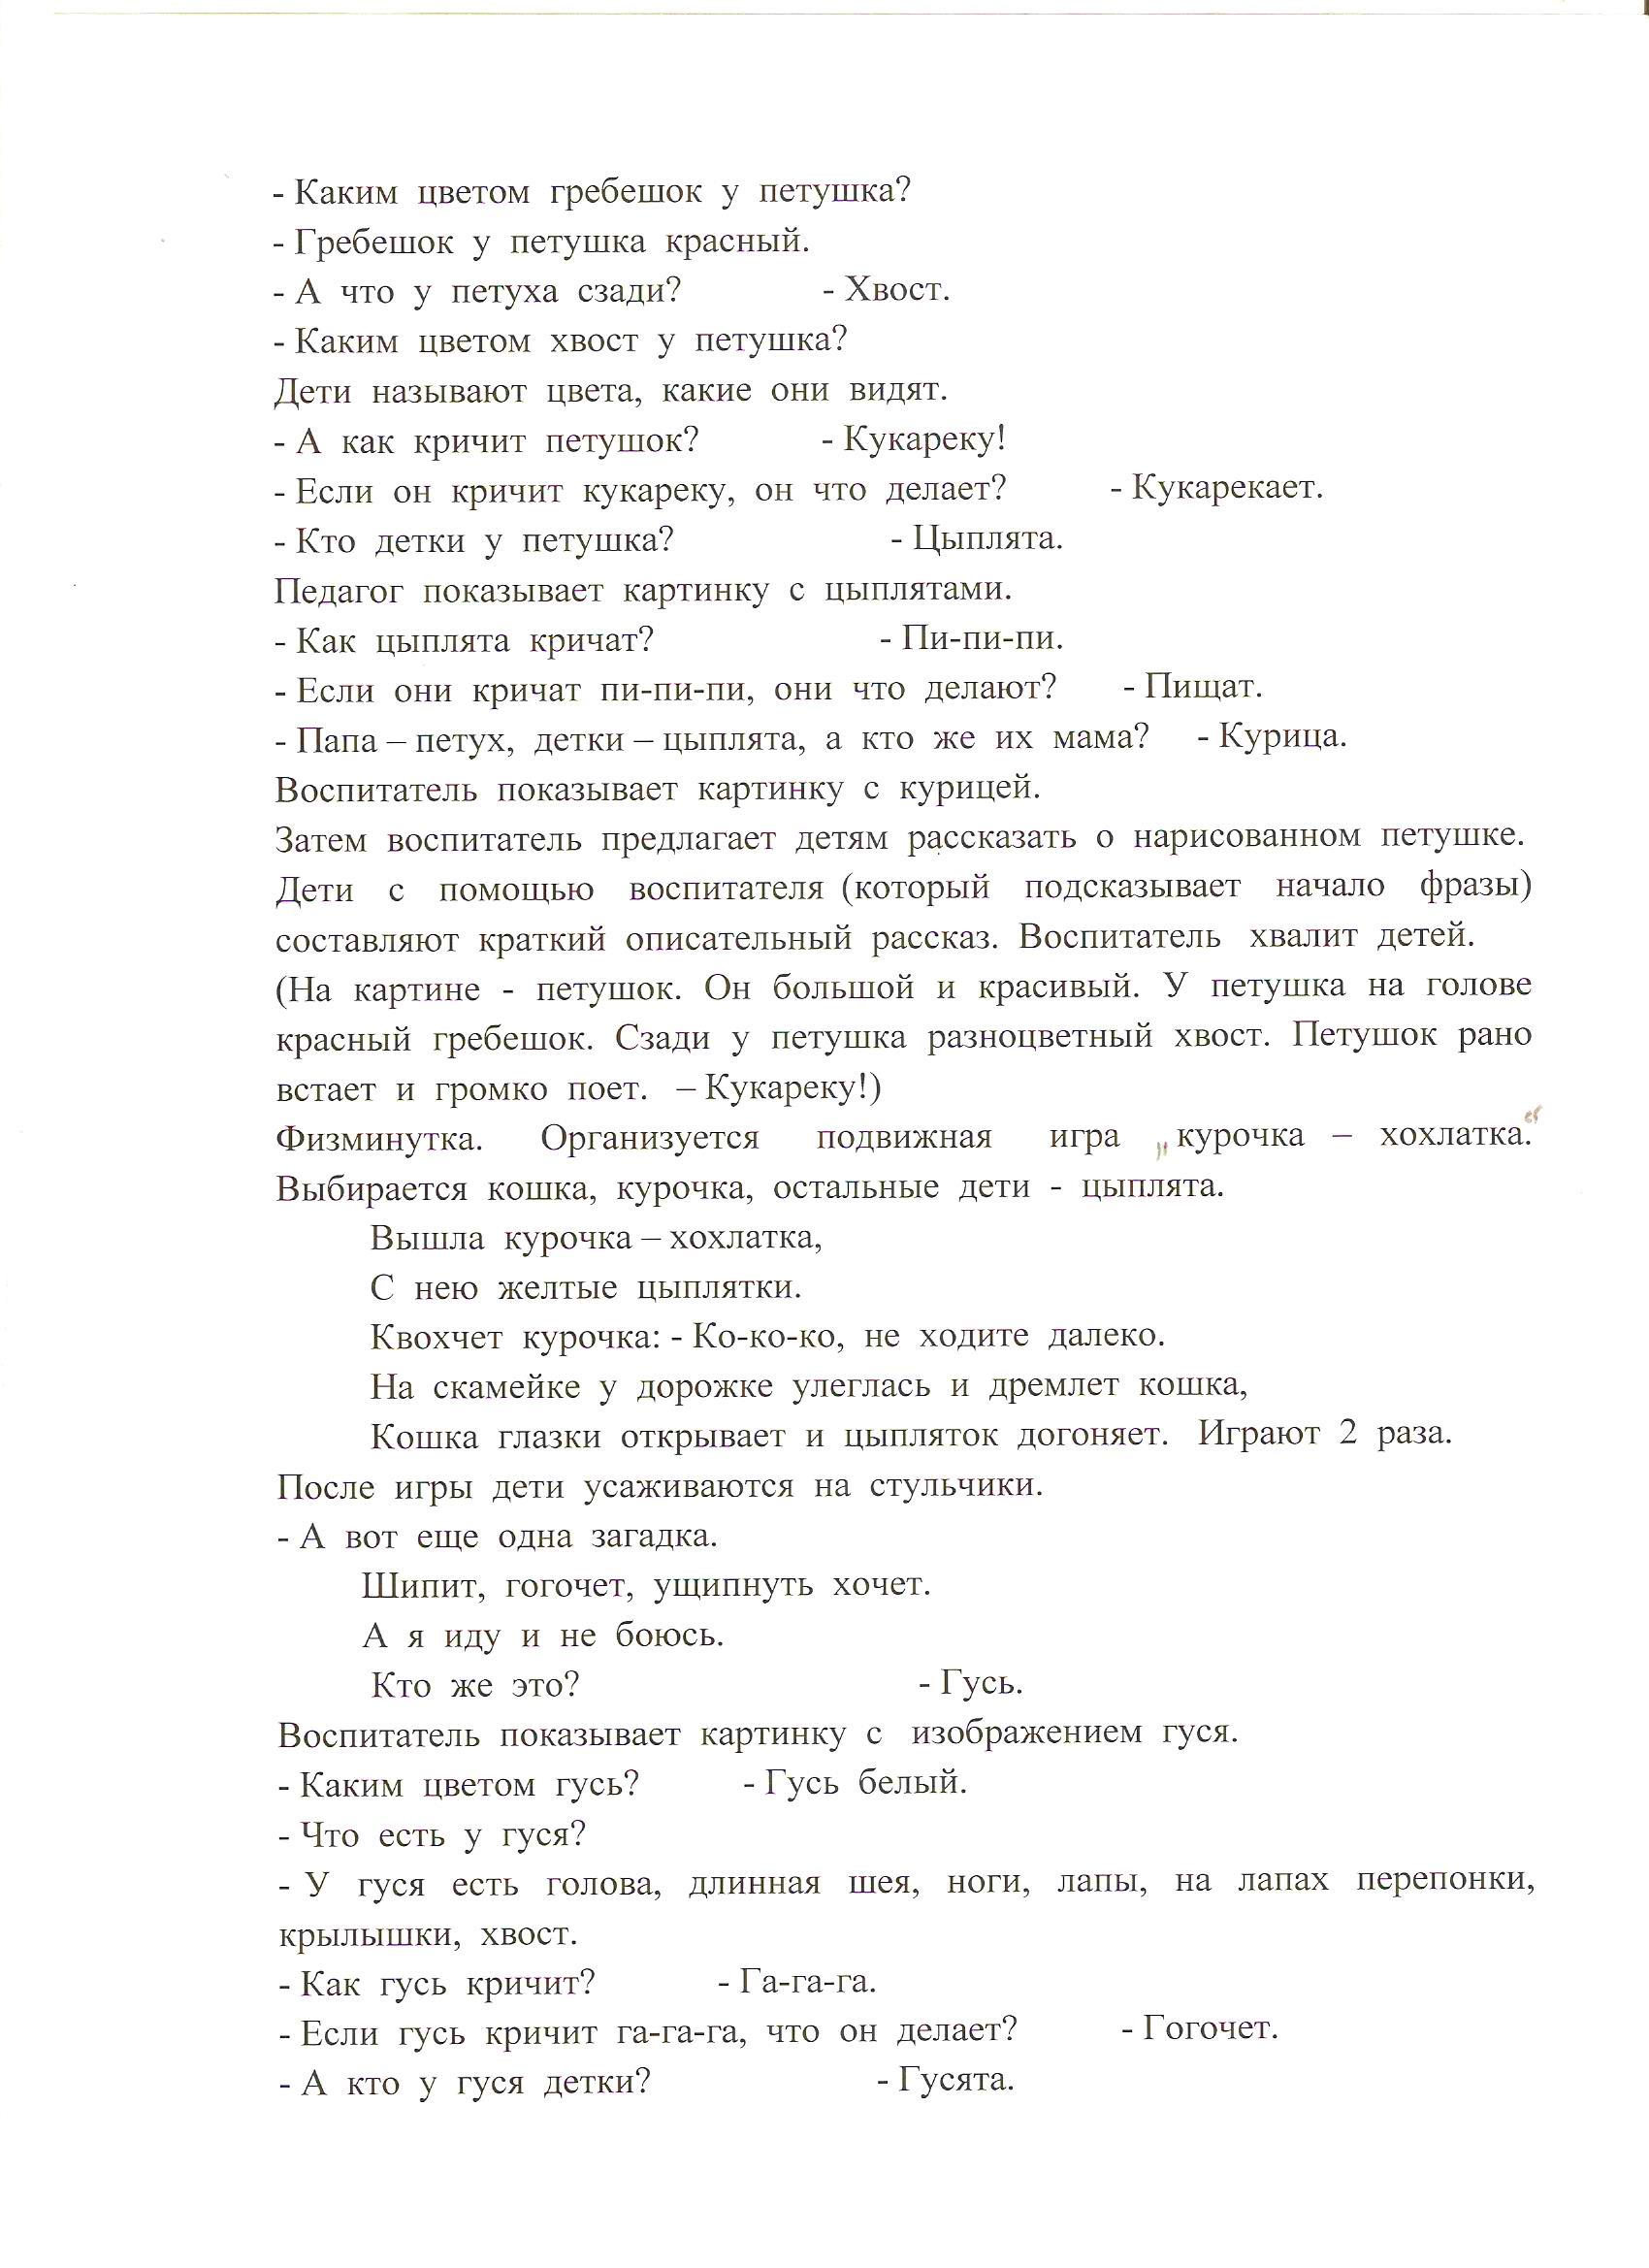 C:\Users\Оля\Pictures\2015-03-31 11\11 001.jpg